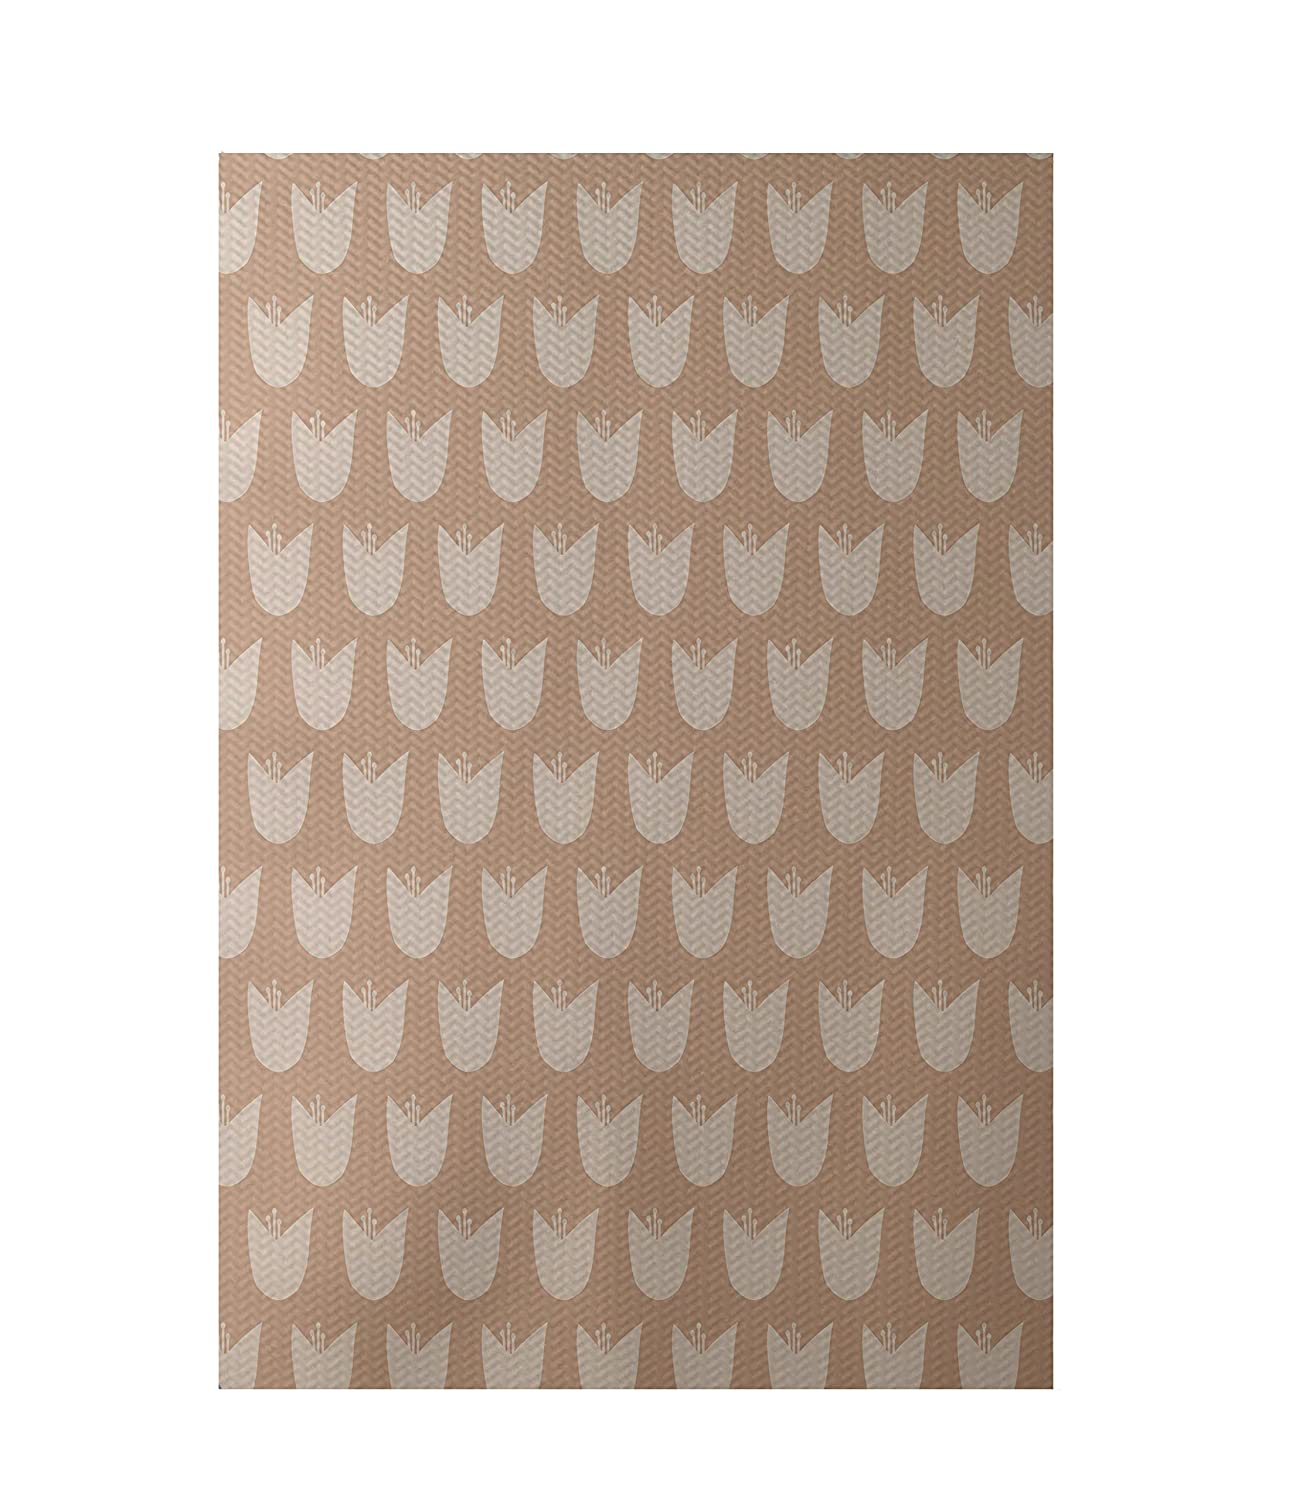 Almond Butter E by design RFN174TA5TA7-35 Tulips Floral Print Indoor//Outdoor Rug